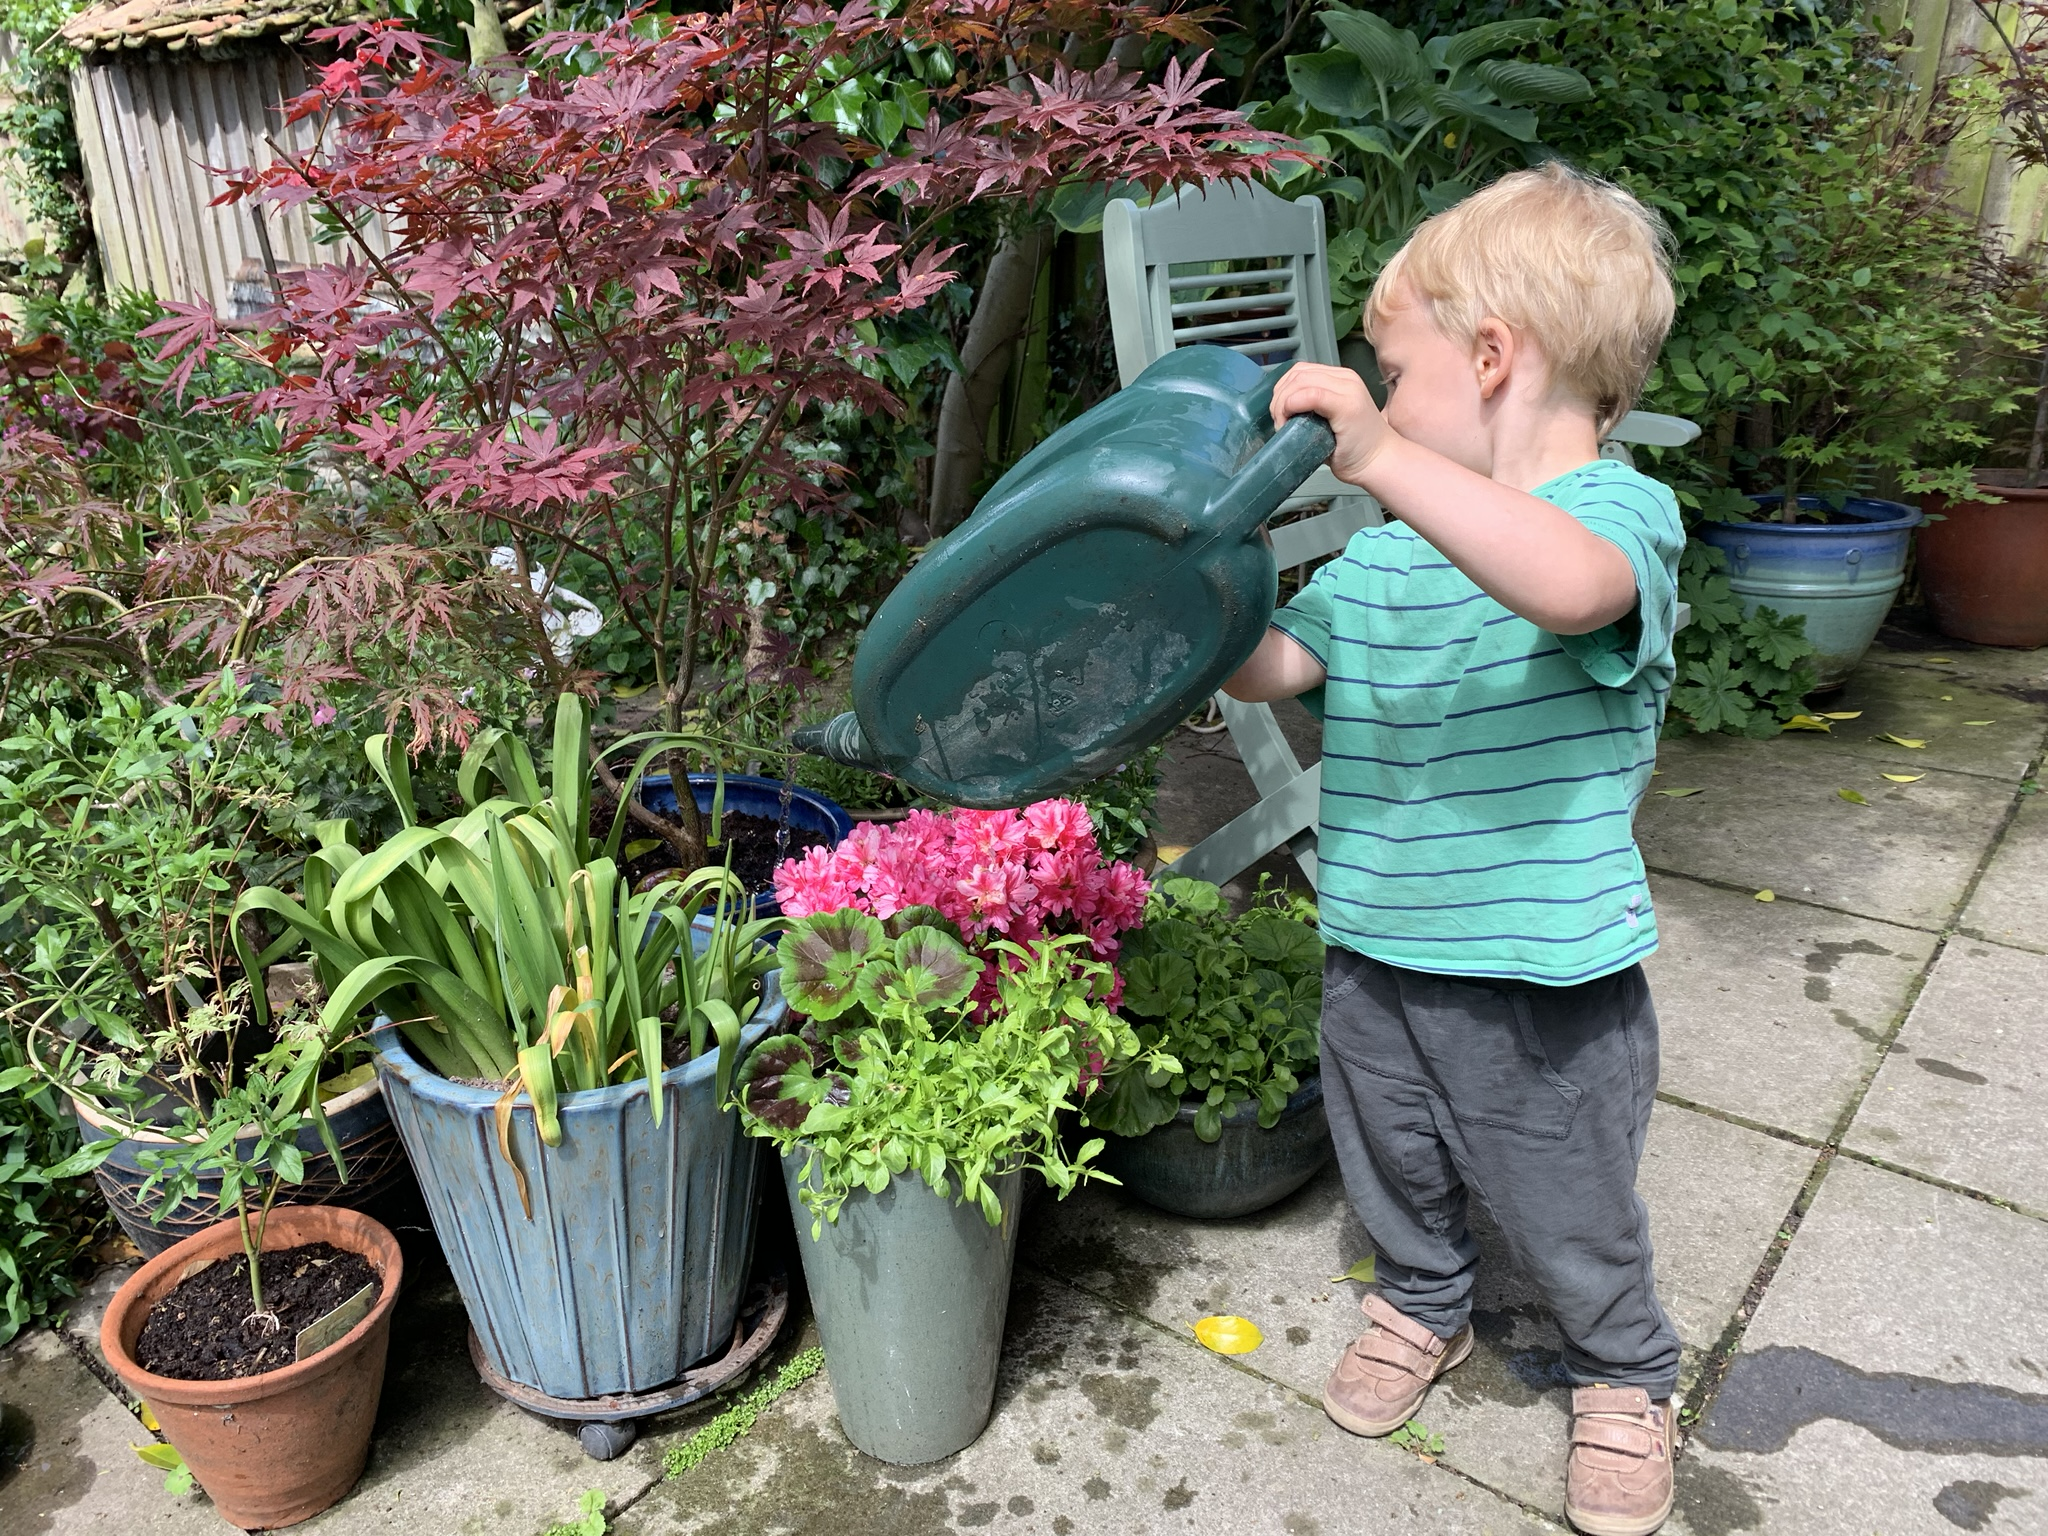 Garden wildlife, boy watering garden plants